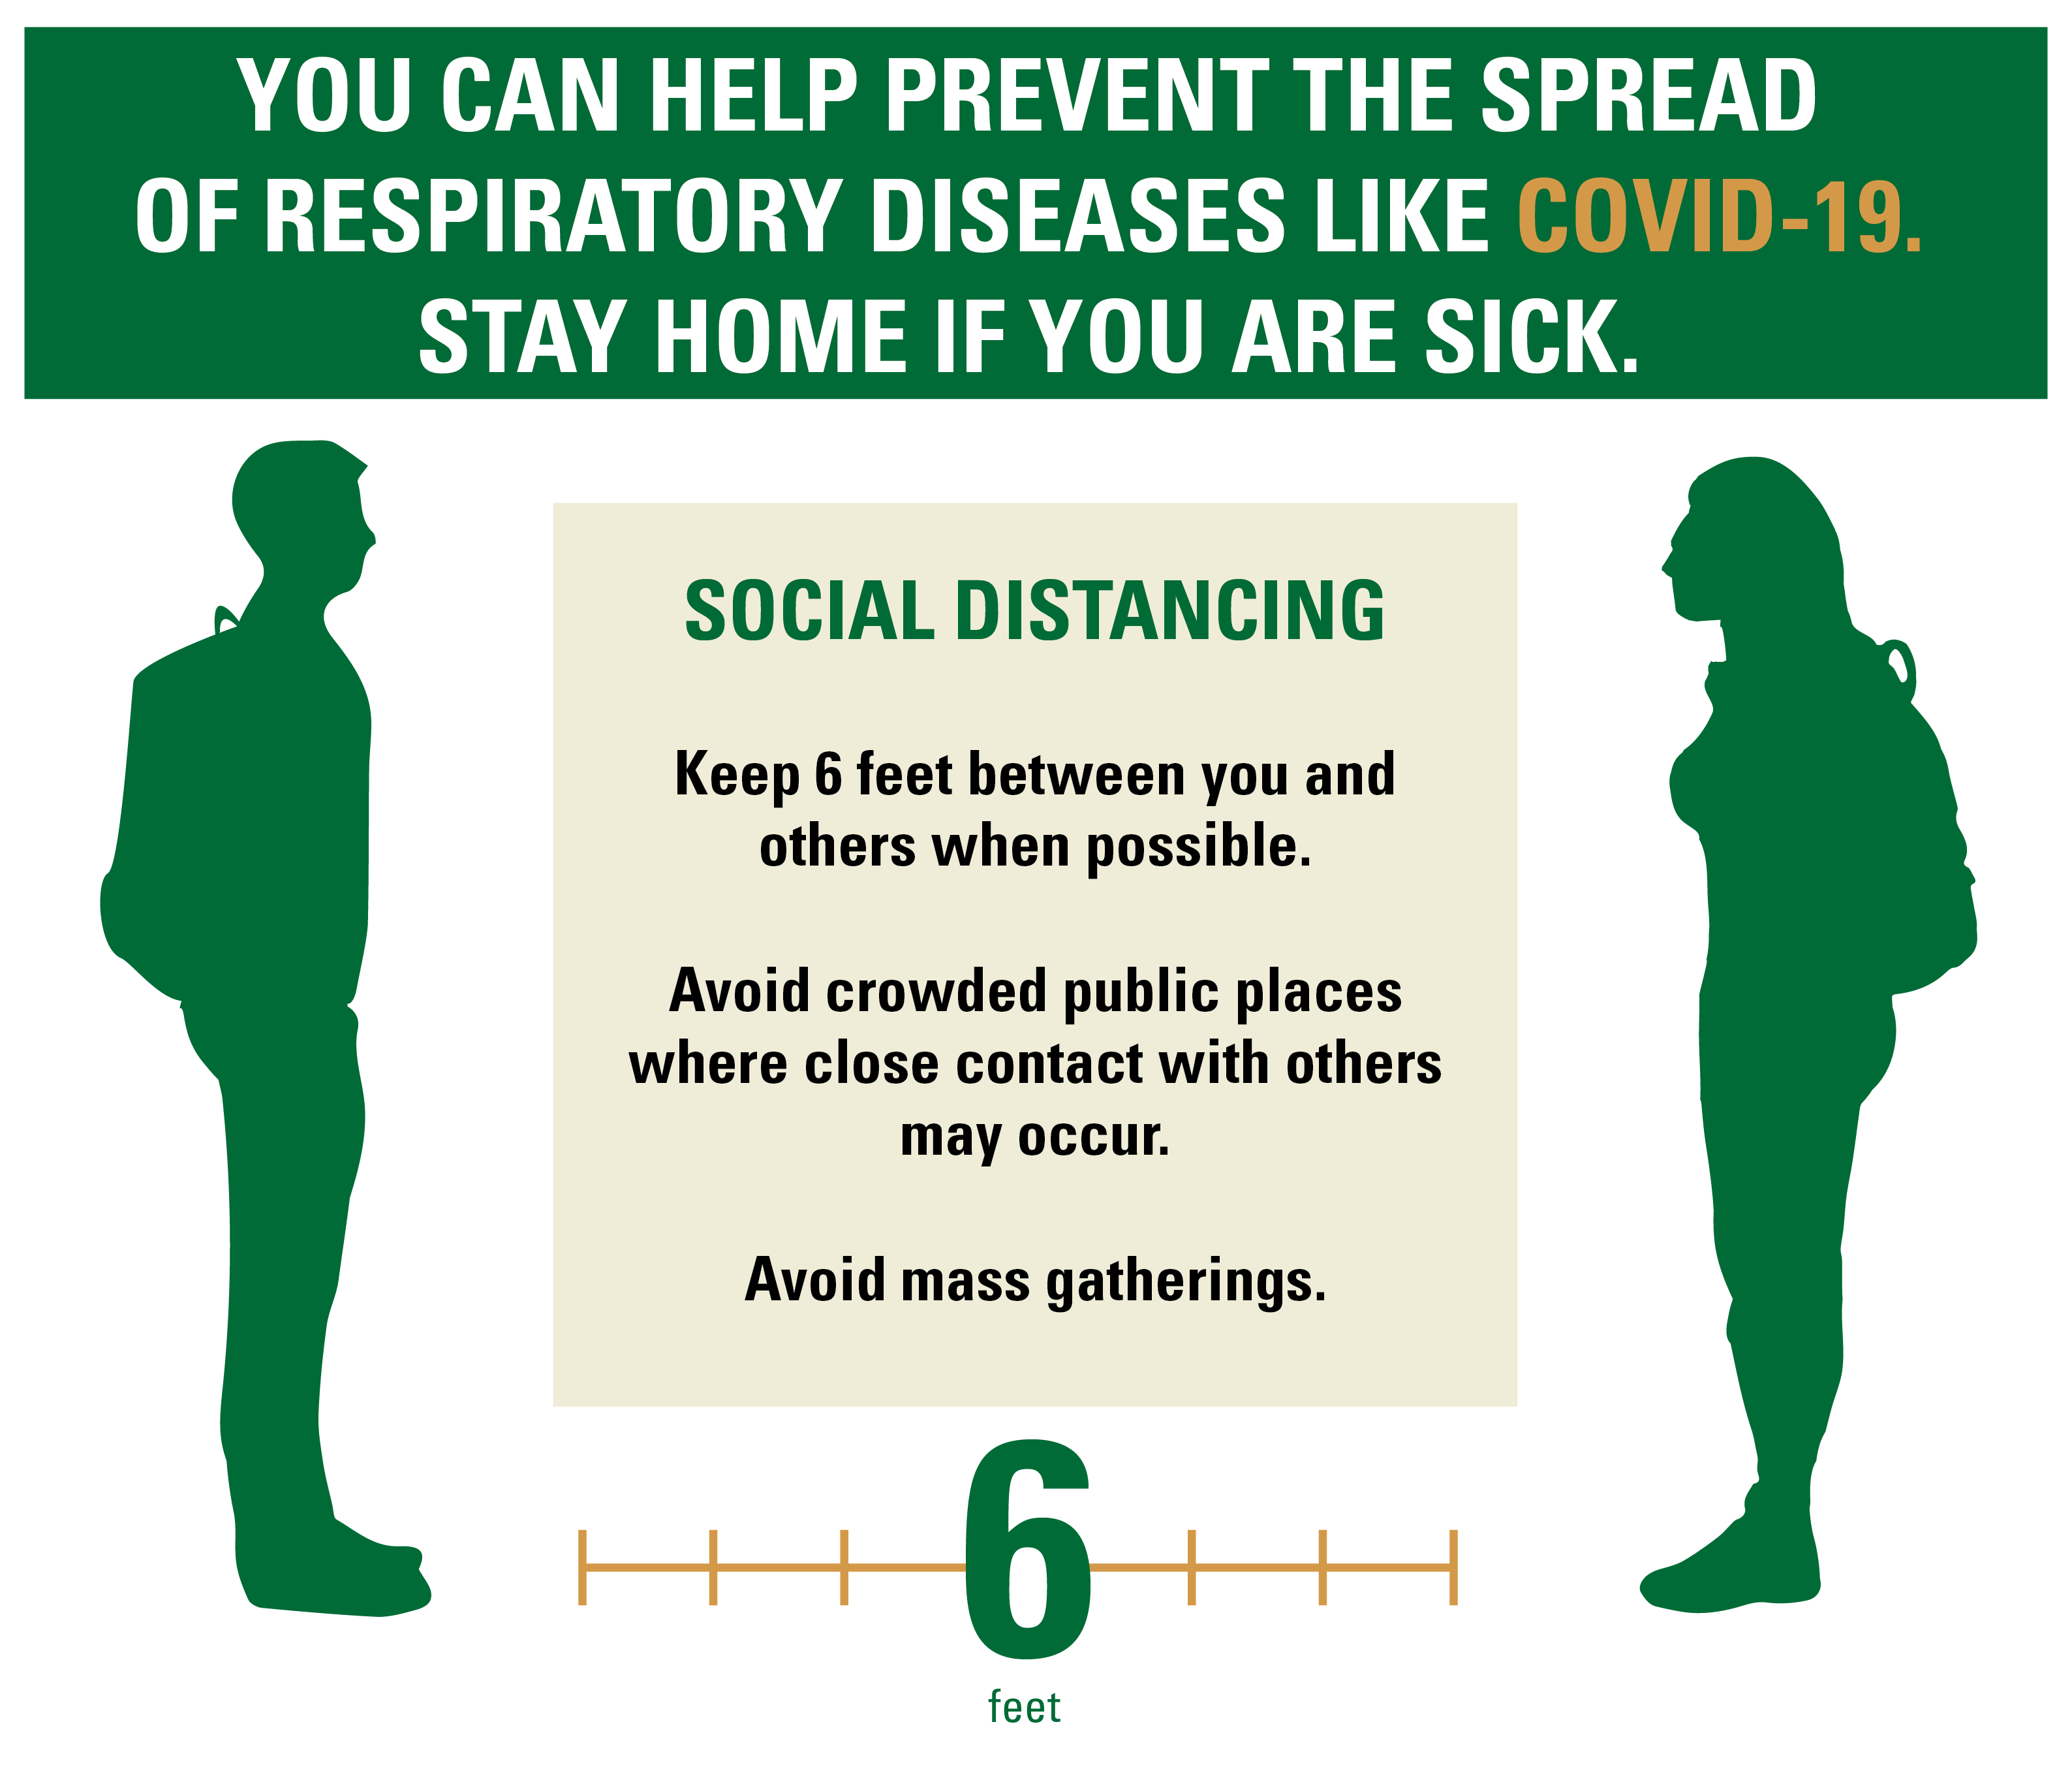 You can help prevent the spread of respiratory diseases like COVID-19. Social distancing, keep 6 foot between you and others when possible. Avoid croweded publis places were close contact with other may occur. Avoid mass gatherings